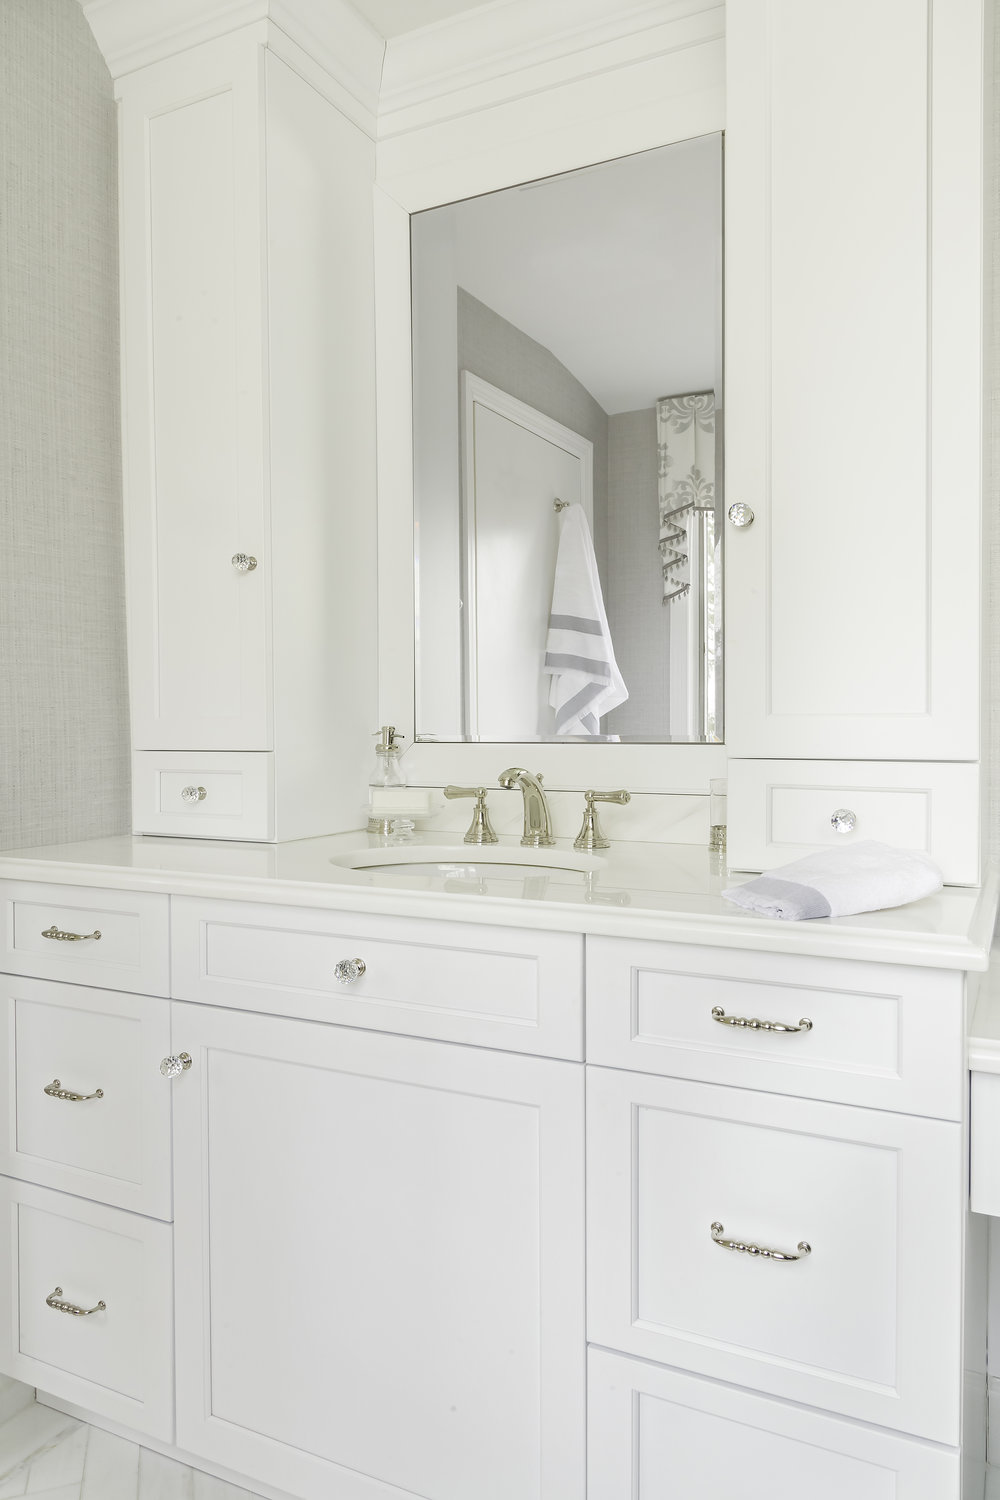 Bright bathroom with white cabinets and mirror over sink